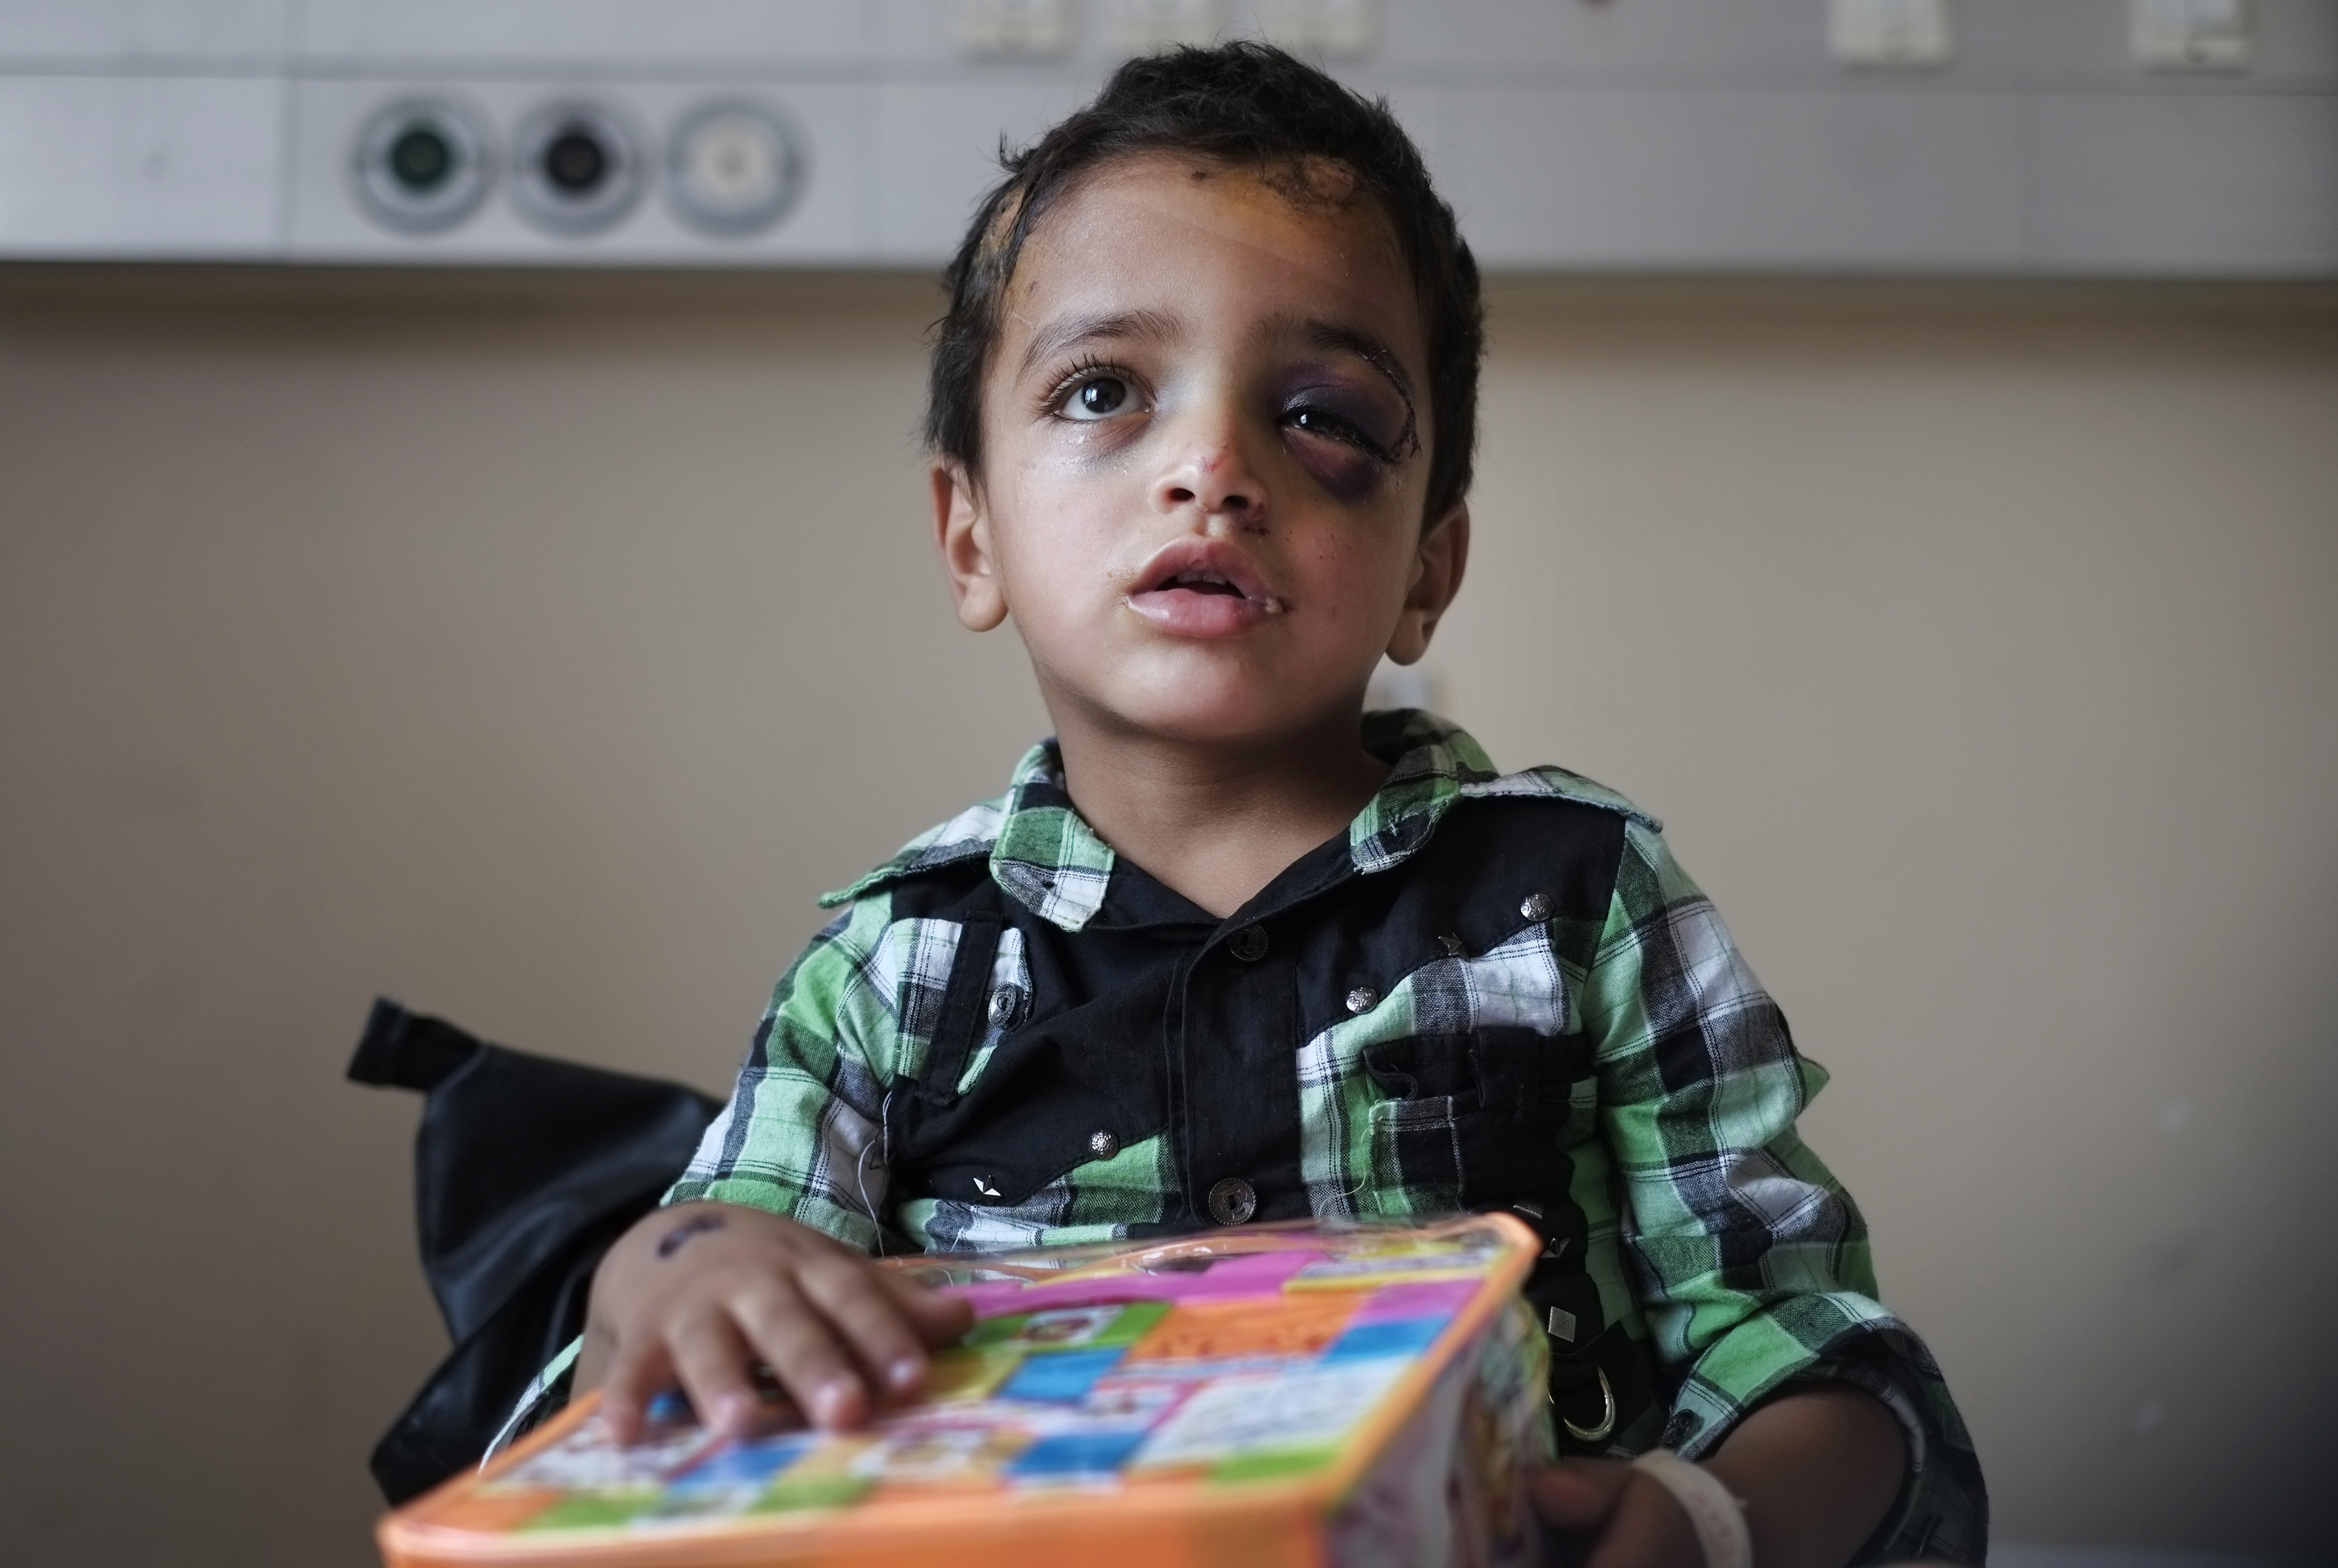 Marwan Hassanein, 4, gets a gift for Eid at Shifa Hospital in Gaza City, where he's being treated for shrapnel wounds to his head July 28, 2014.